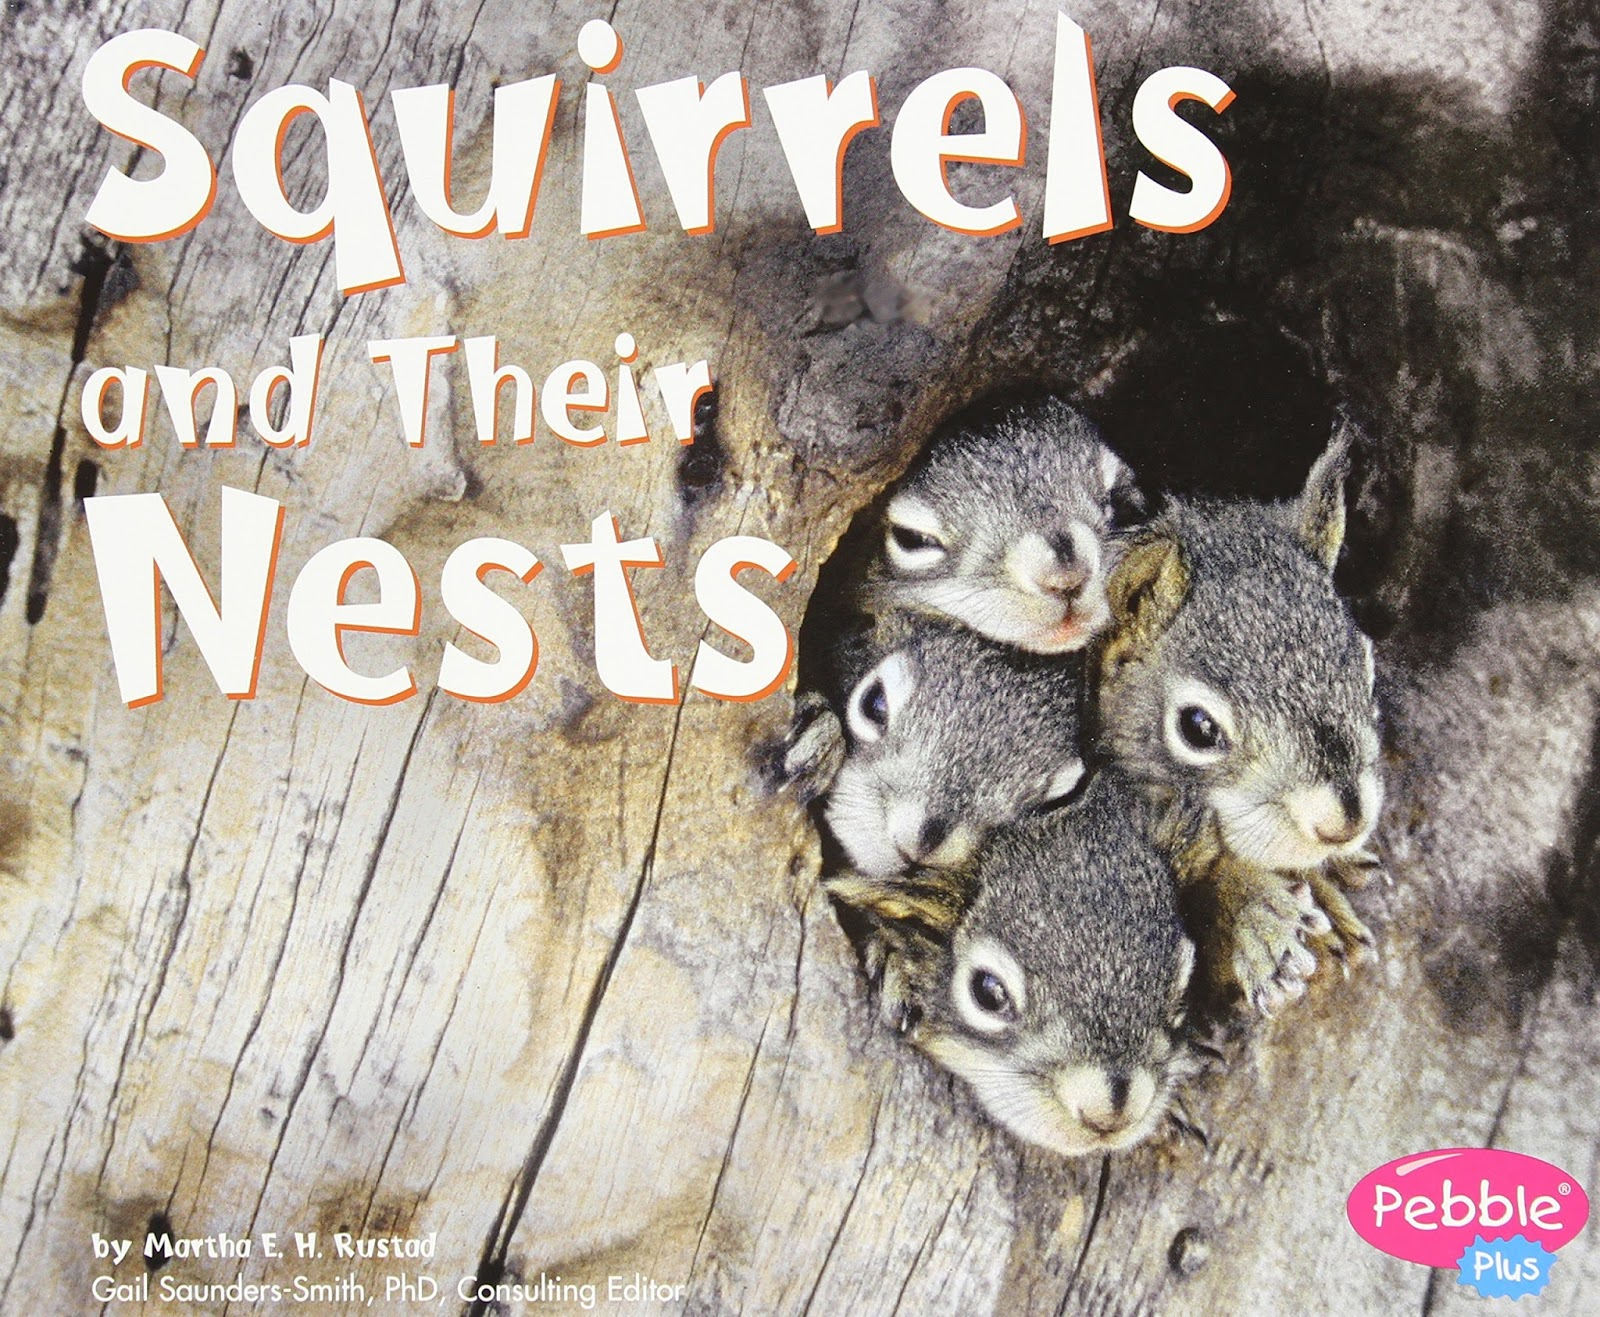 Interested in learning more about these cute woodland animals with your  little one? These books are here to help introduce squirrels in both a fun  and ...